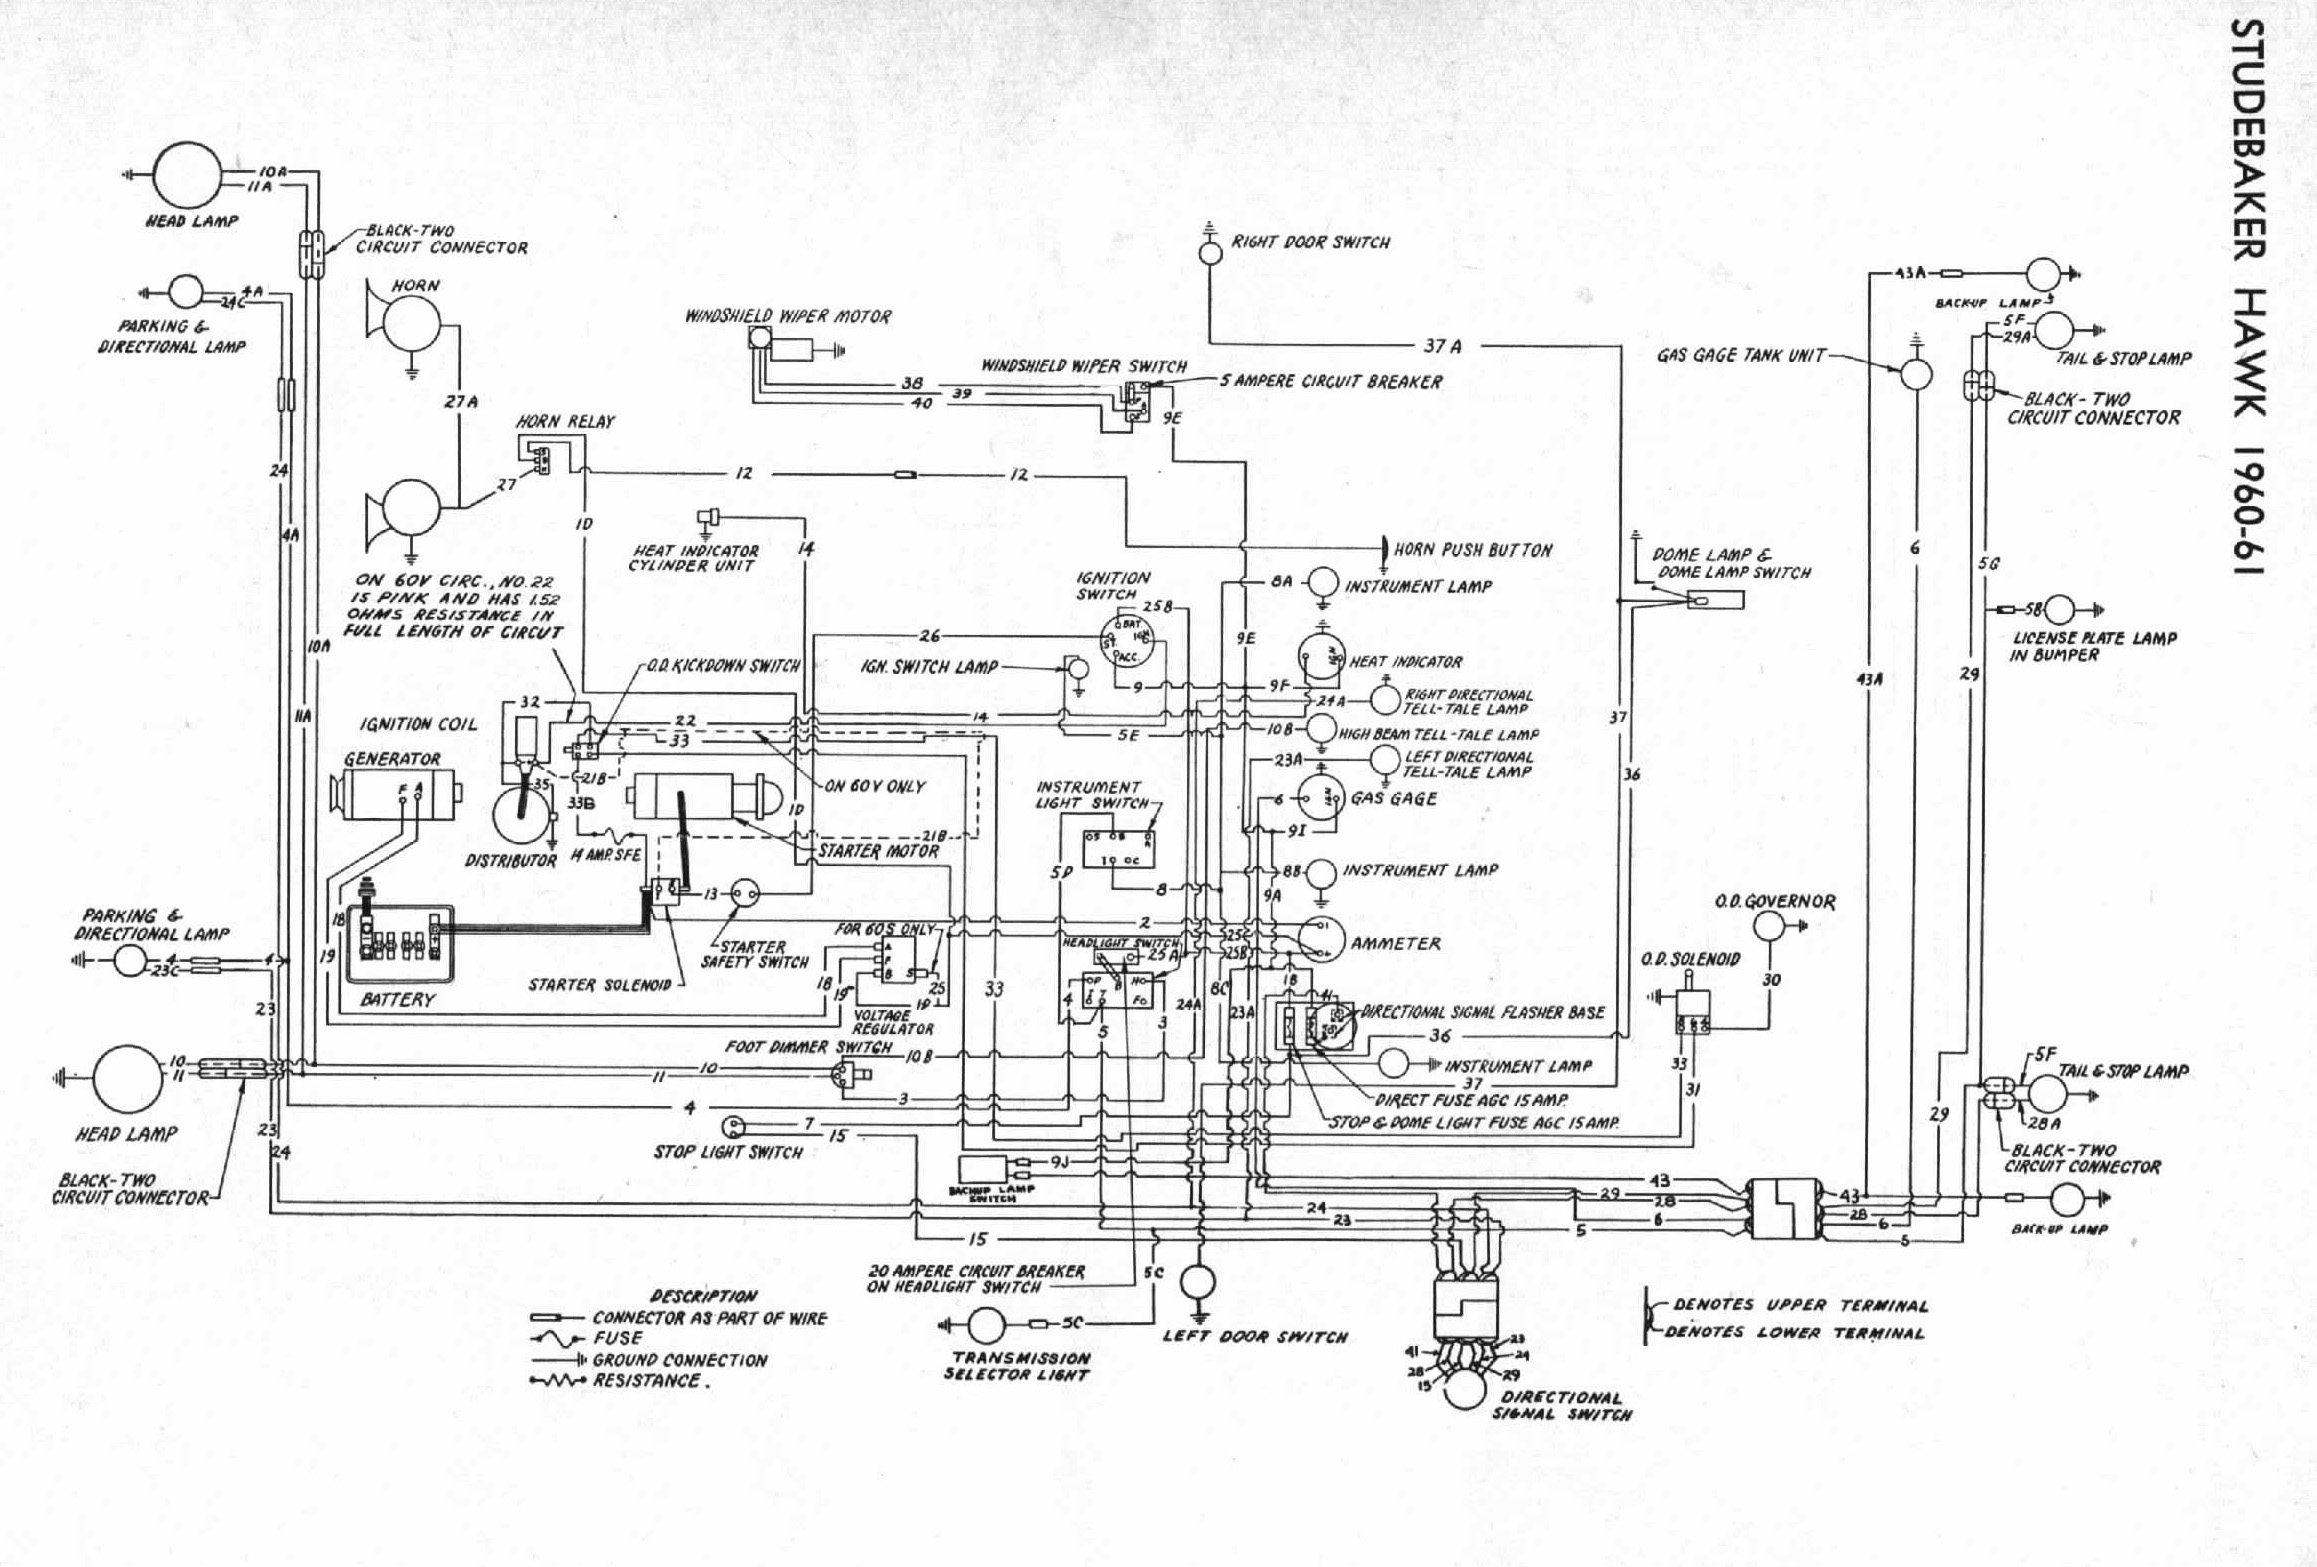 1960 Studebaker Wiring Diagram Auto Electrical Automotive Schematics 99 Honda Accord Ex 2 3l Ulev Bob Johnstones And Avanti Page 1979 Lincoln Continental Vacuum